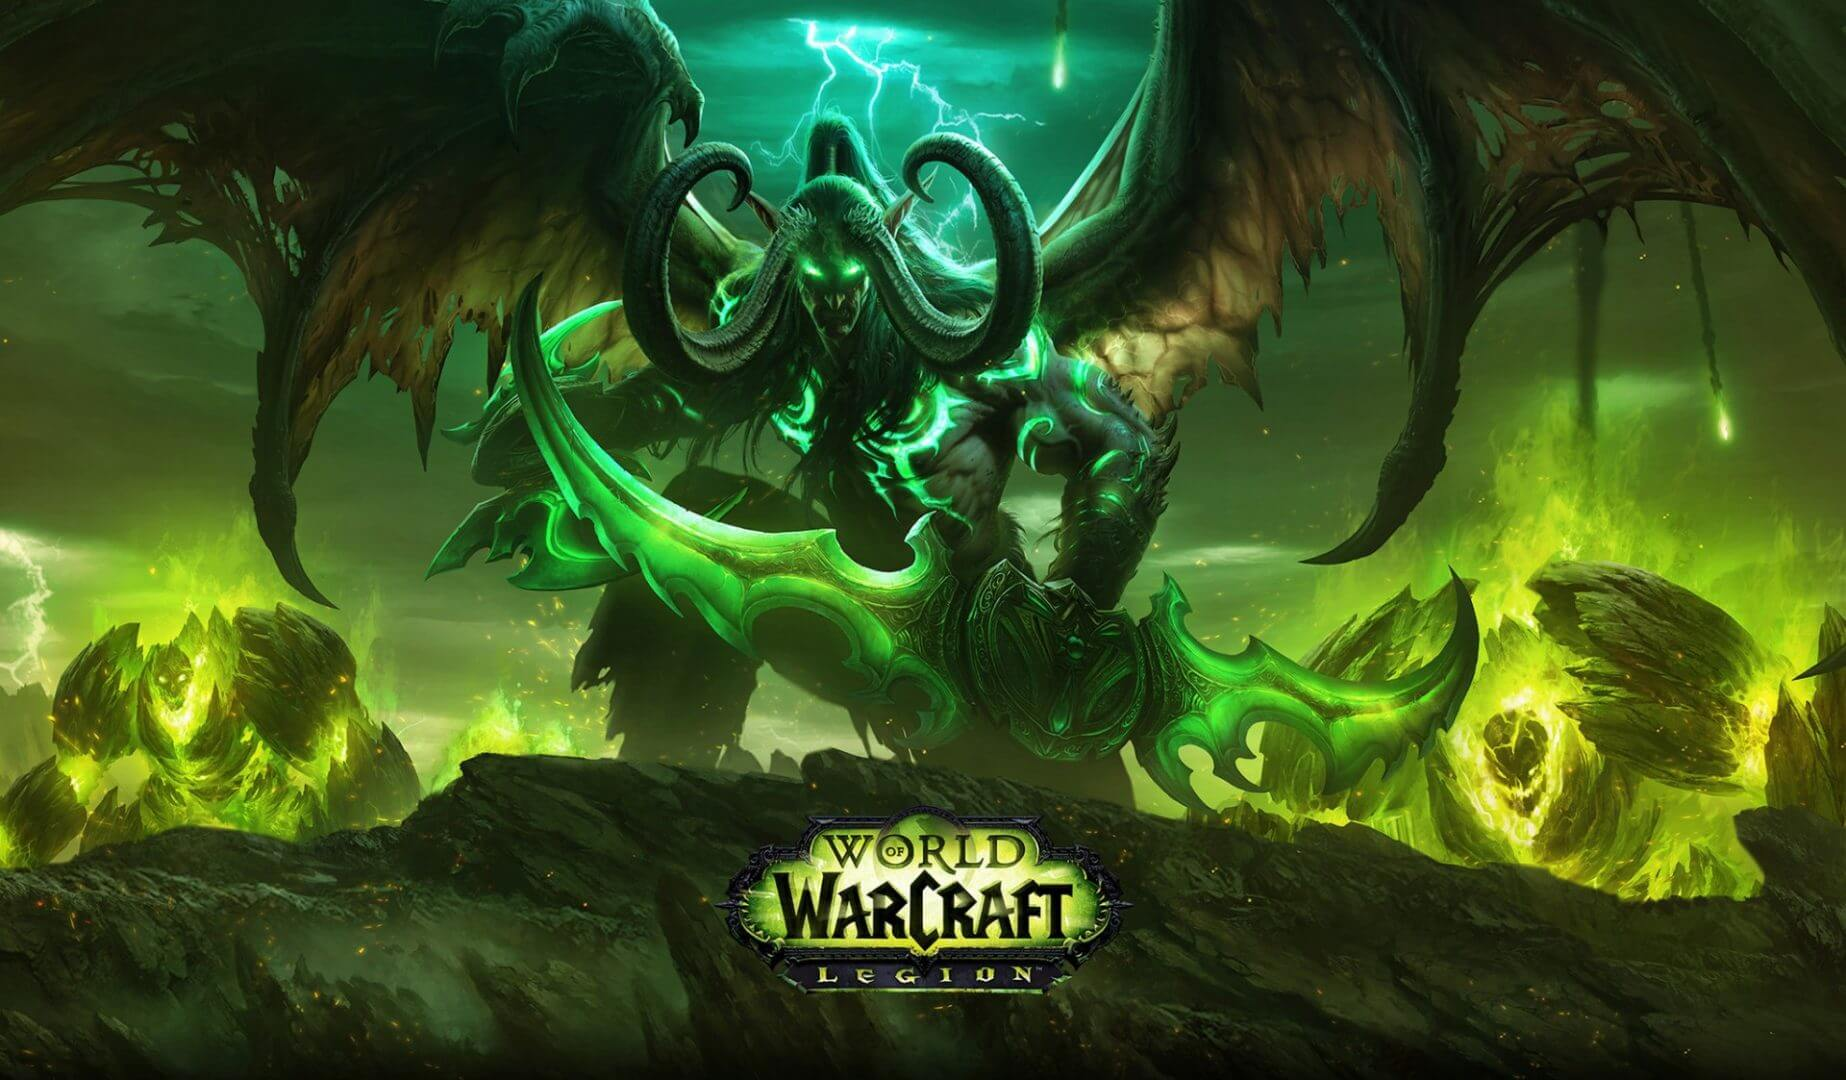 Blizzard Annouces New Expansion, World of Warcraft: Legion